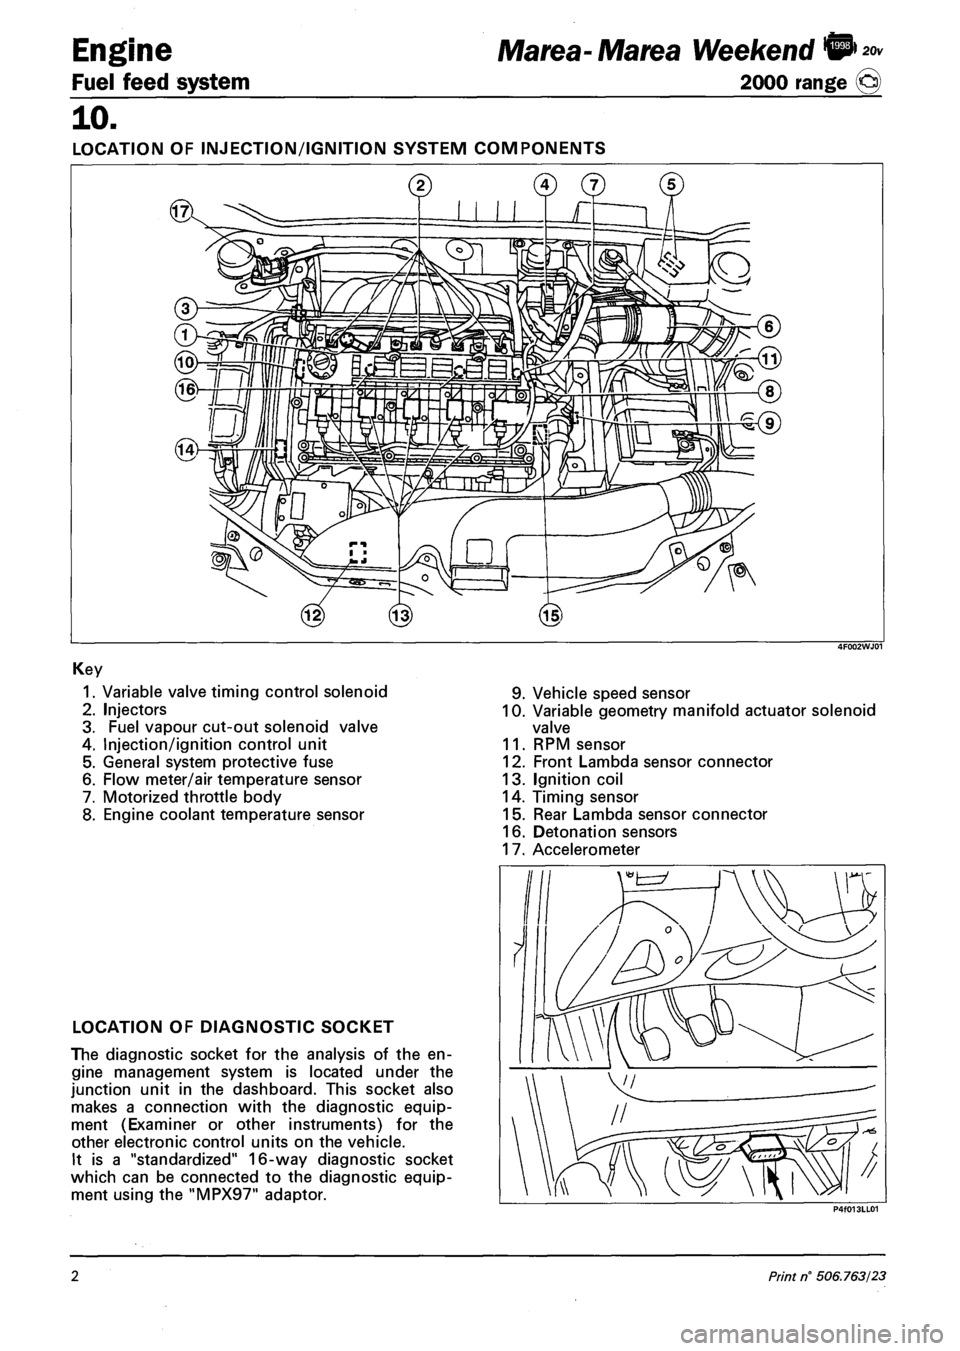 Fiat Marea Wiring Diagram Engine Diagrams Fuses 2001 1g John Deere 650 Bourn